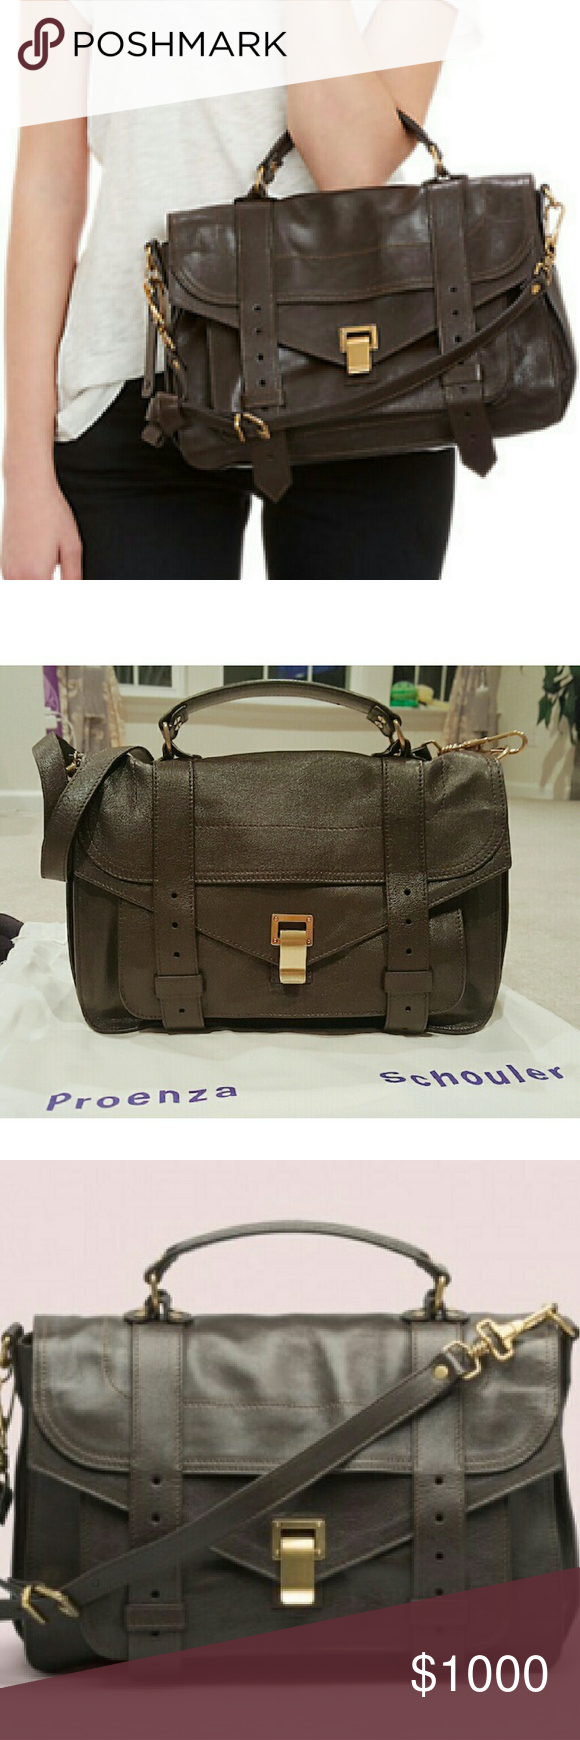 BRAND NEW*** Proenza Schouler PS1 Bag (chocolate) Selling a BRAND NEW Proenza Schouler PS1 Medium leather Satchel bag in excellent condition.  The owner has never wore/used it. Selling it for a discounted price. Great color for winter! If you have any questions/interests, do not hesitate to reach out: xhuangx88@gmail.com Proenza Schouler Bags Shoulder Bags